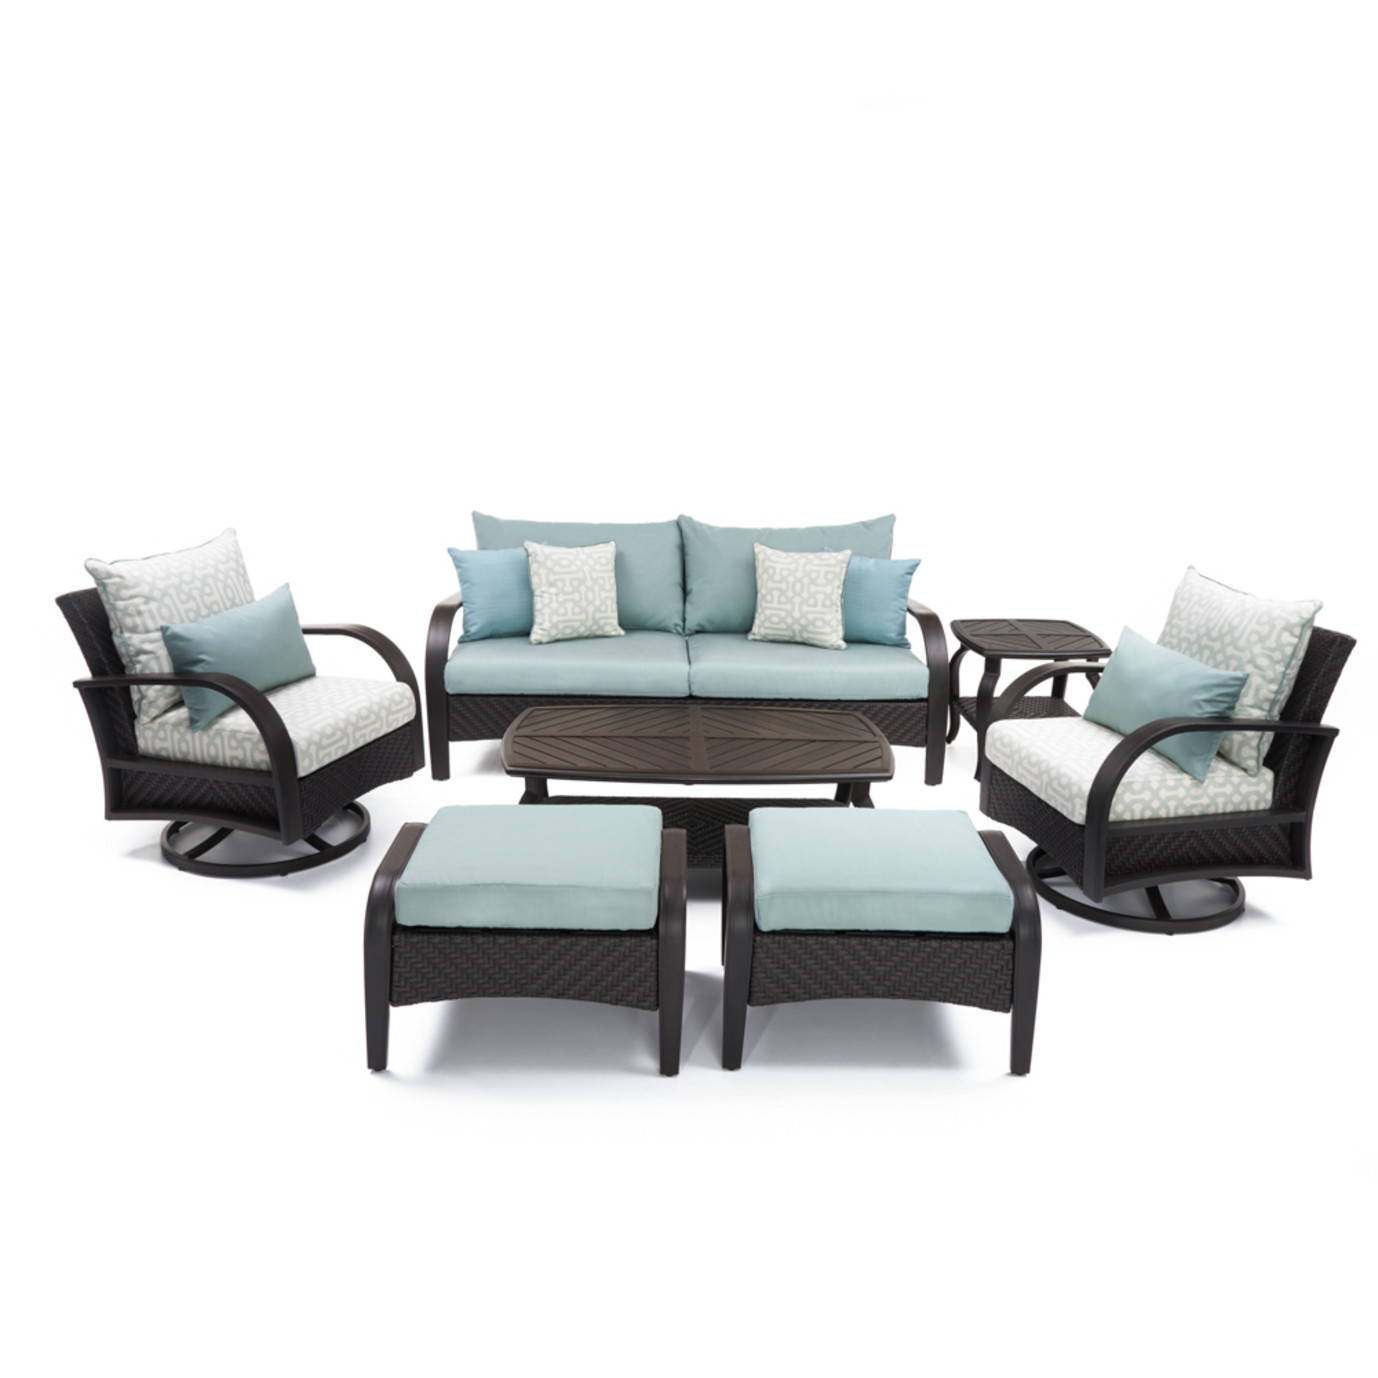 Barcelo™ 7pc Deluxe Motion Club Deep Seating Set - Spa Blue